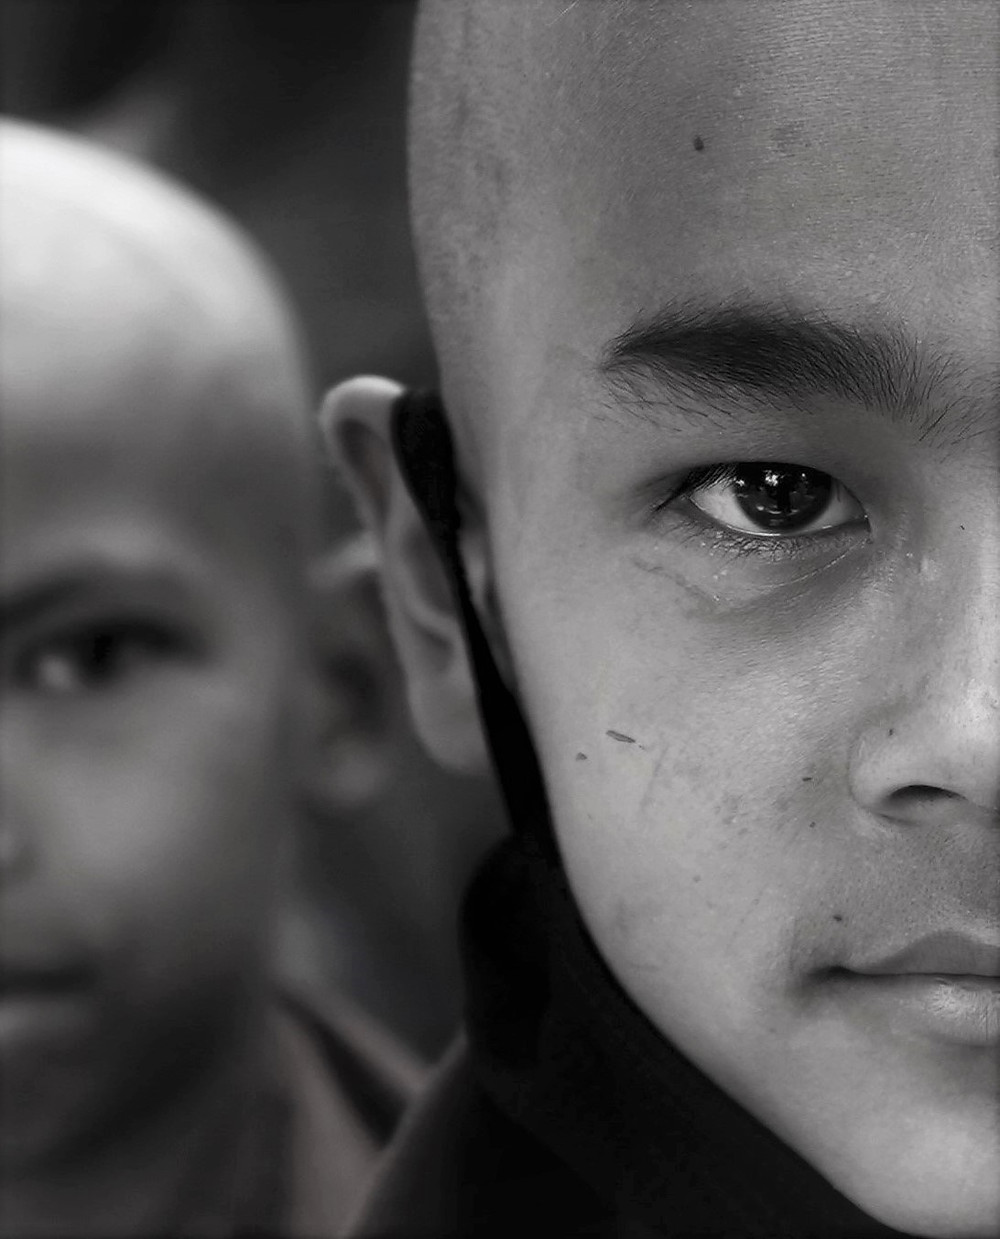 Split screen profile of young monks-to-be who arrived from the dharmashala on the occasion of a visit from the Dalai Lama.